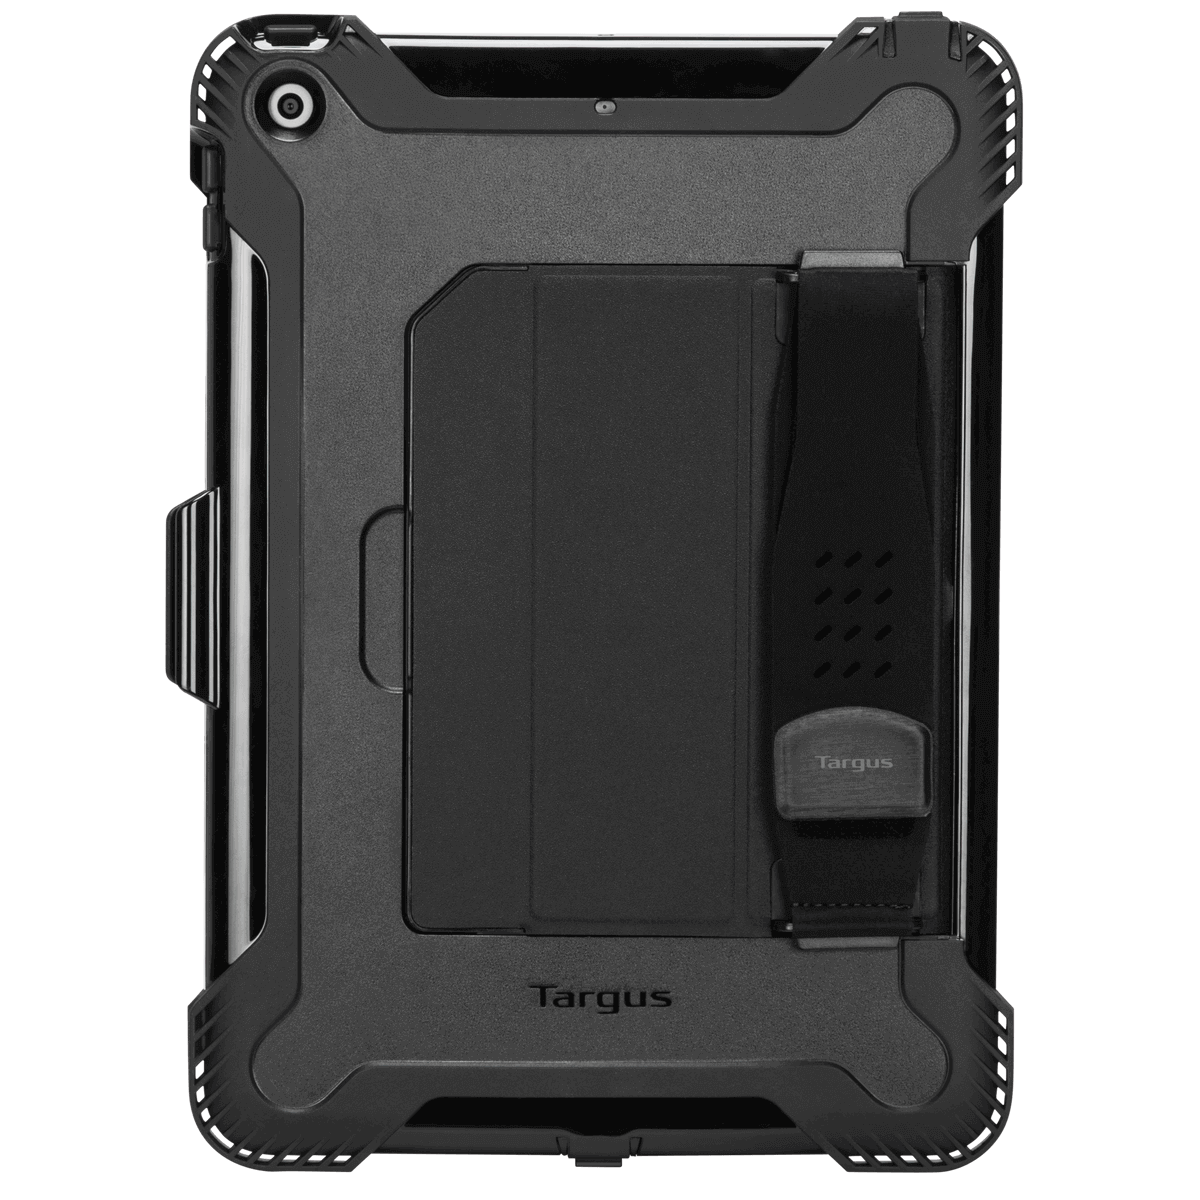 THD49912GLZ Military Grade Drop Protection White//Gray 10.2-inch made with Non-Porous Medical-Grade PC and TPU 7th gen. Targus SafePort Rugged Healthcare Case for iPad